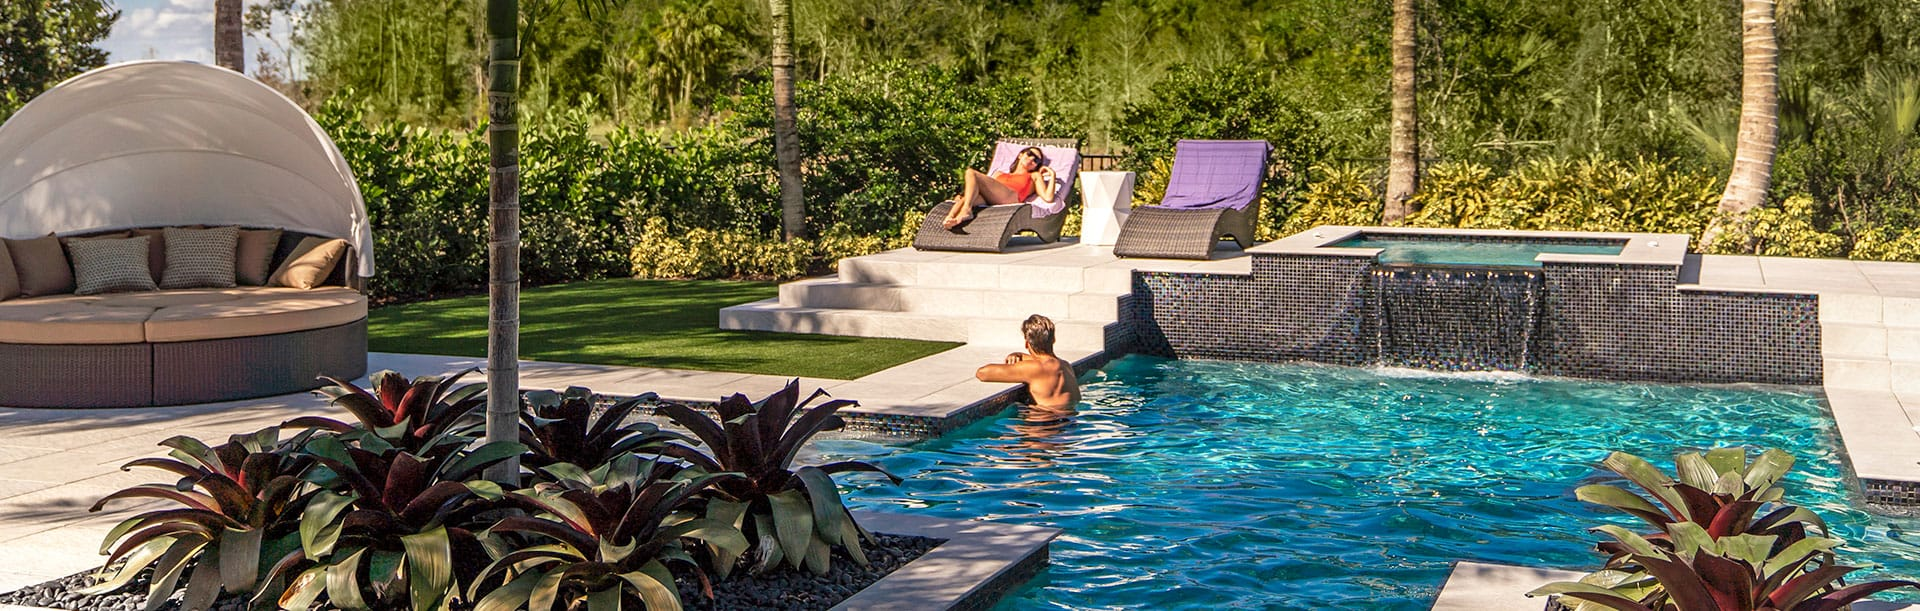 Kolter Homes' luxurious backyard pools